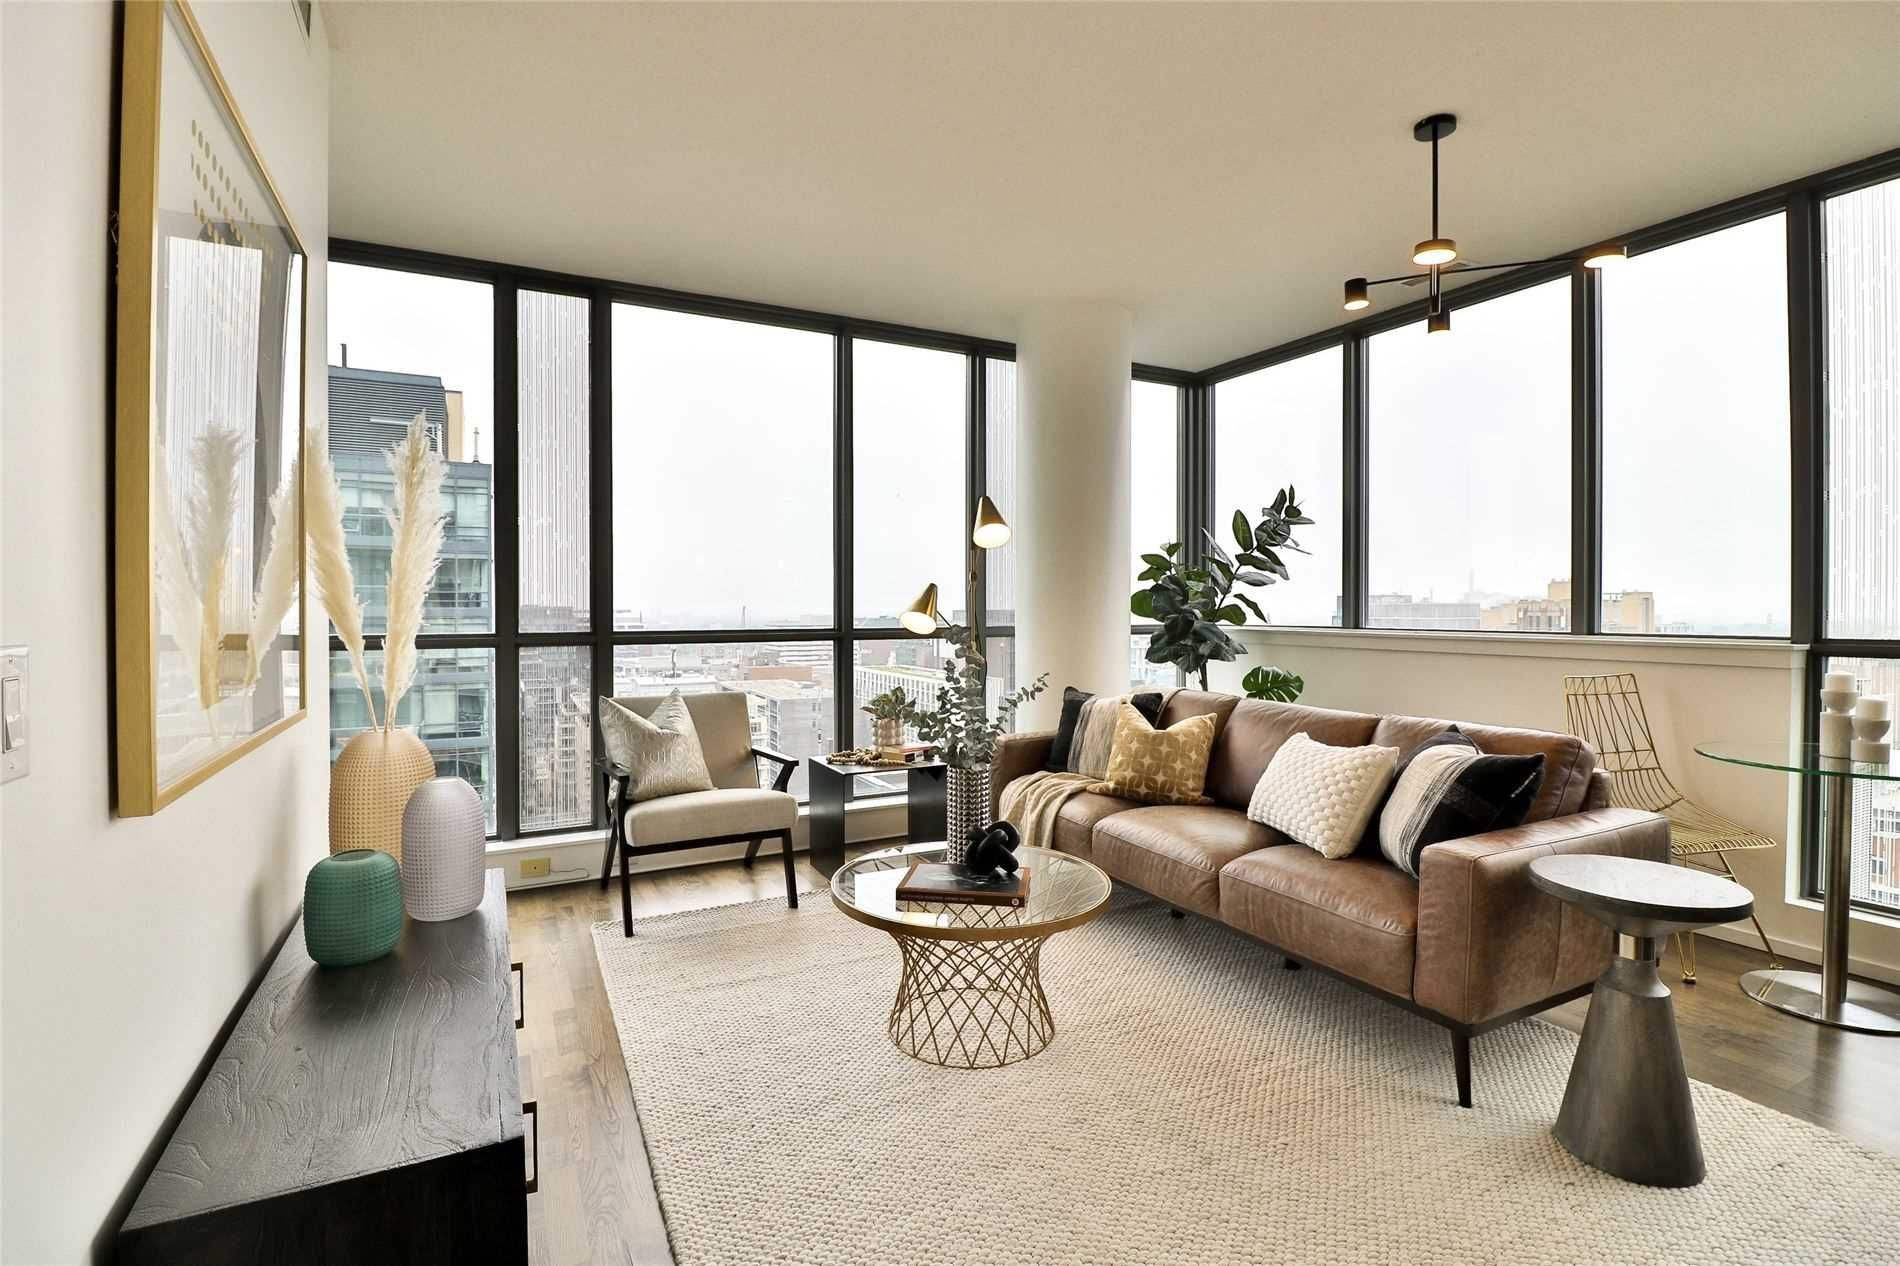 8 Charlotte St, unit 1802 for sale in Toronto - image #1